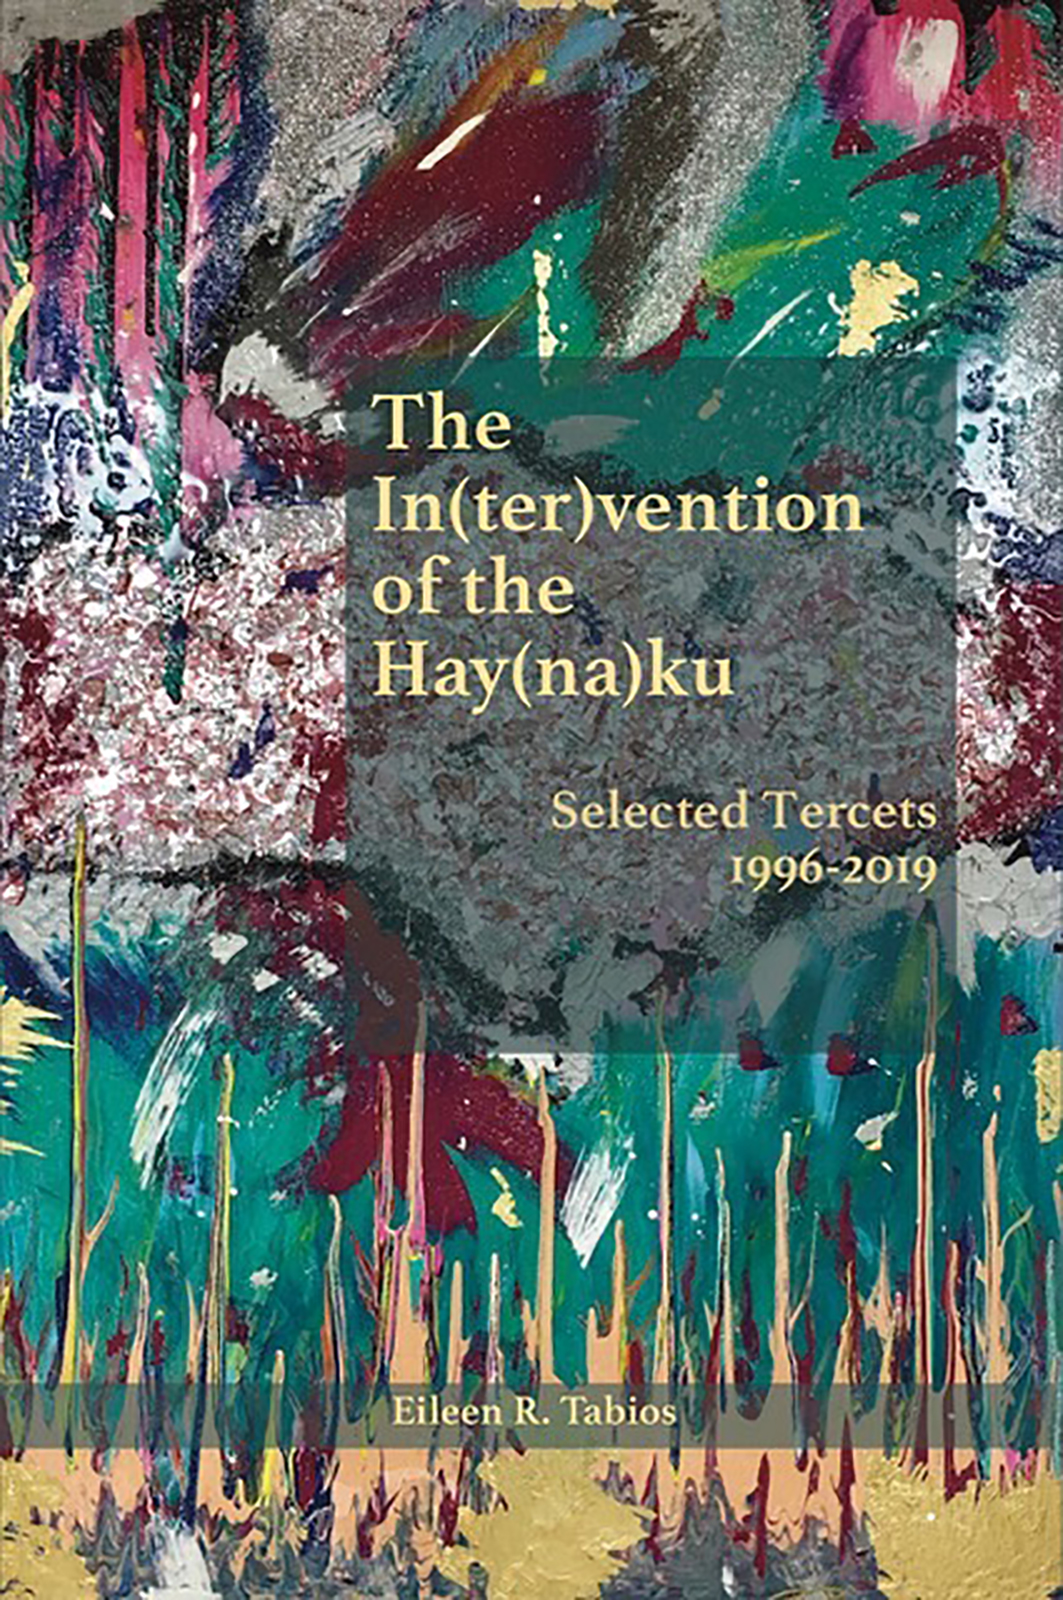 The In(ter)vention of the Hay(na)ku: Selected Tercets 1996-2019